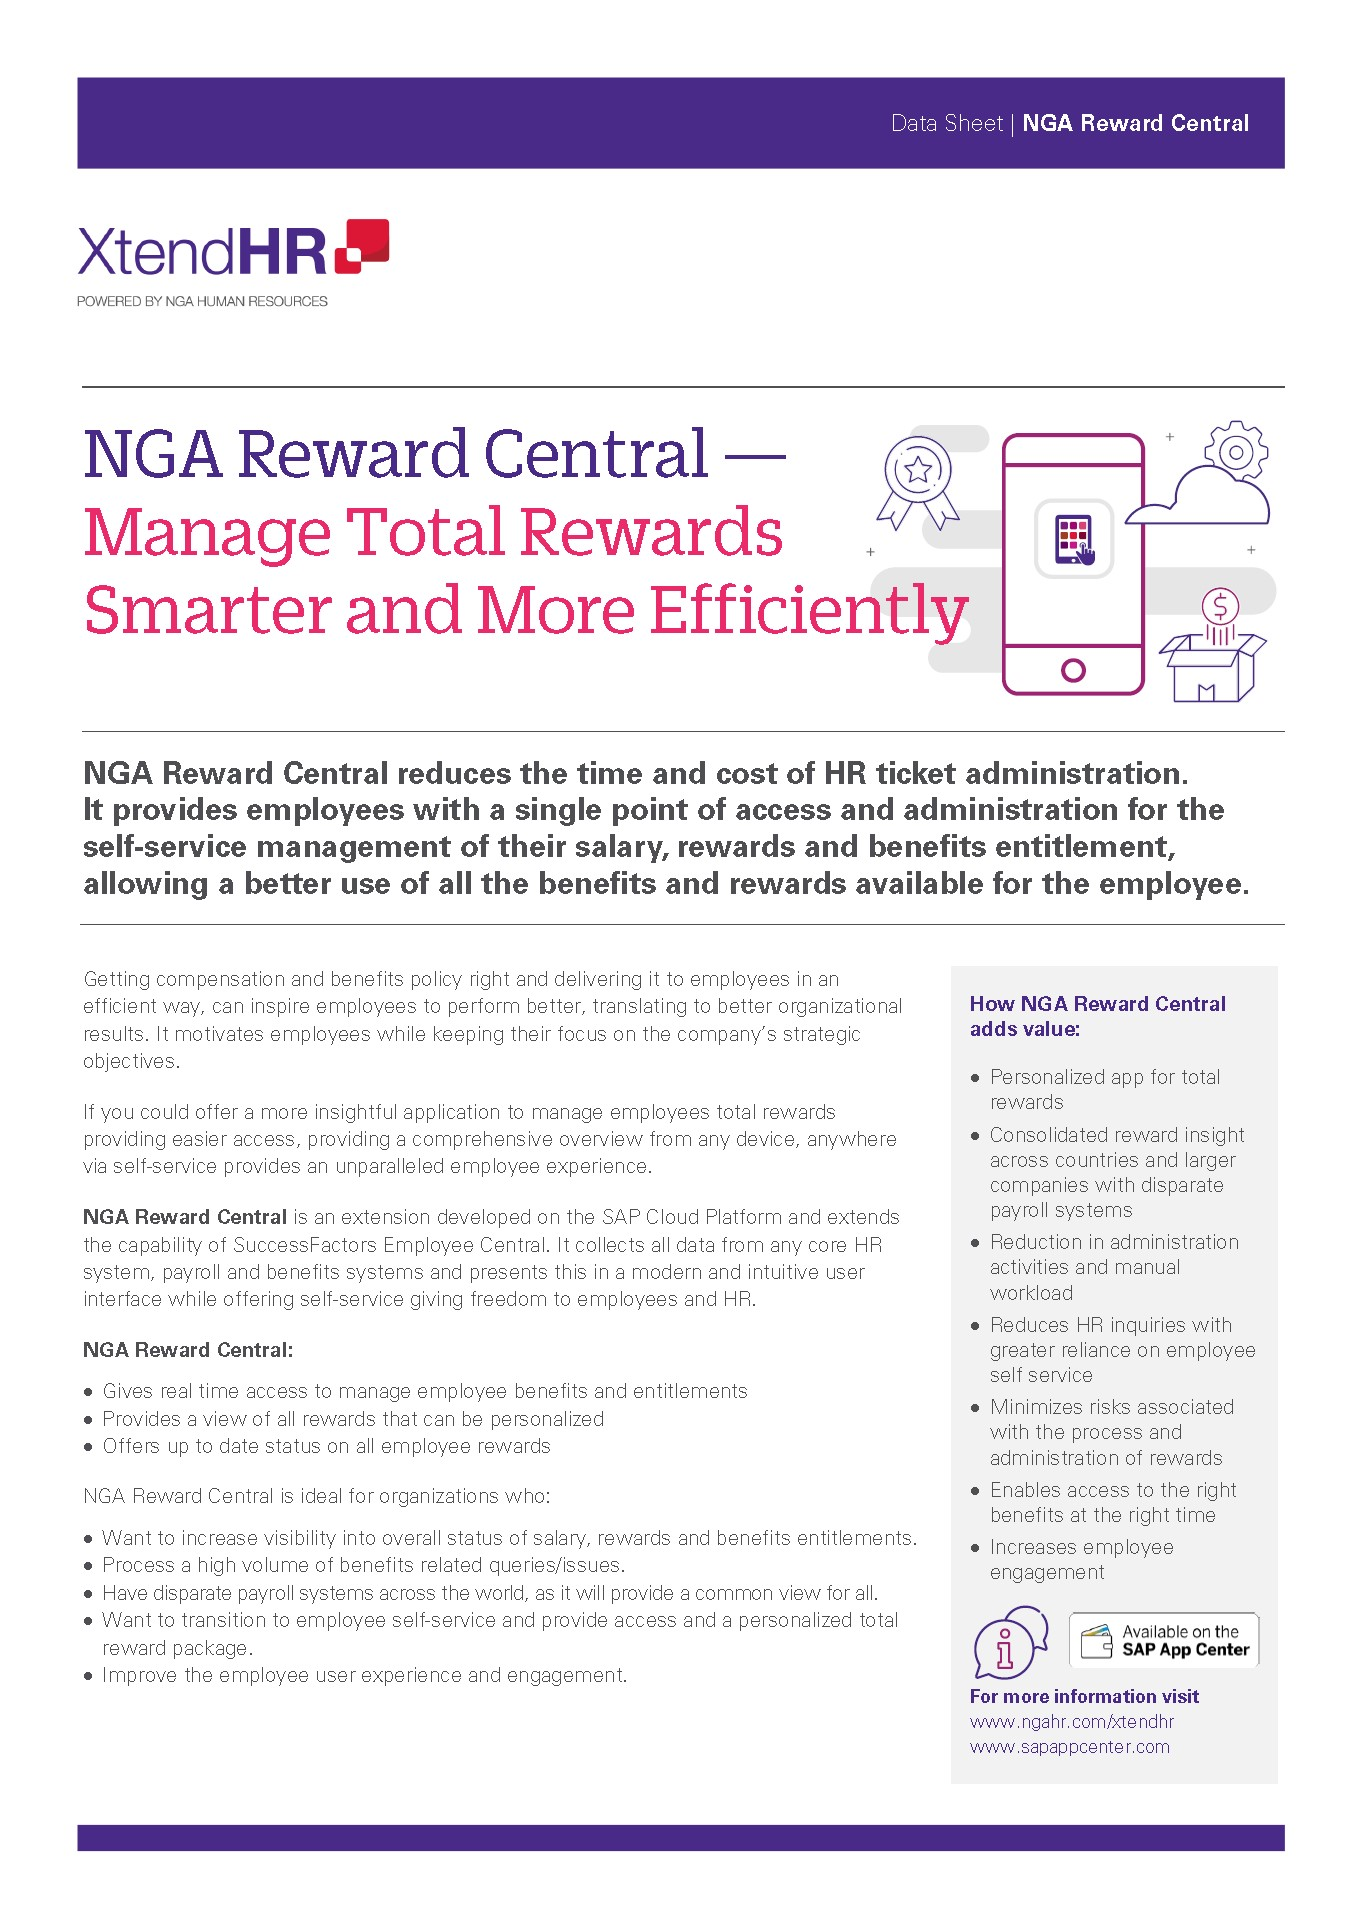 NGA Reward Central